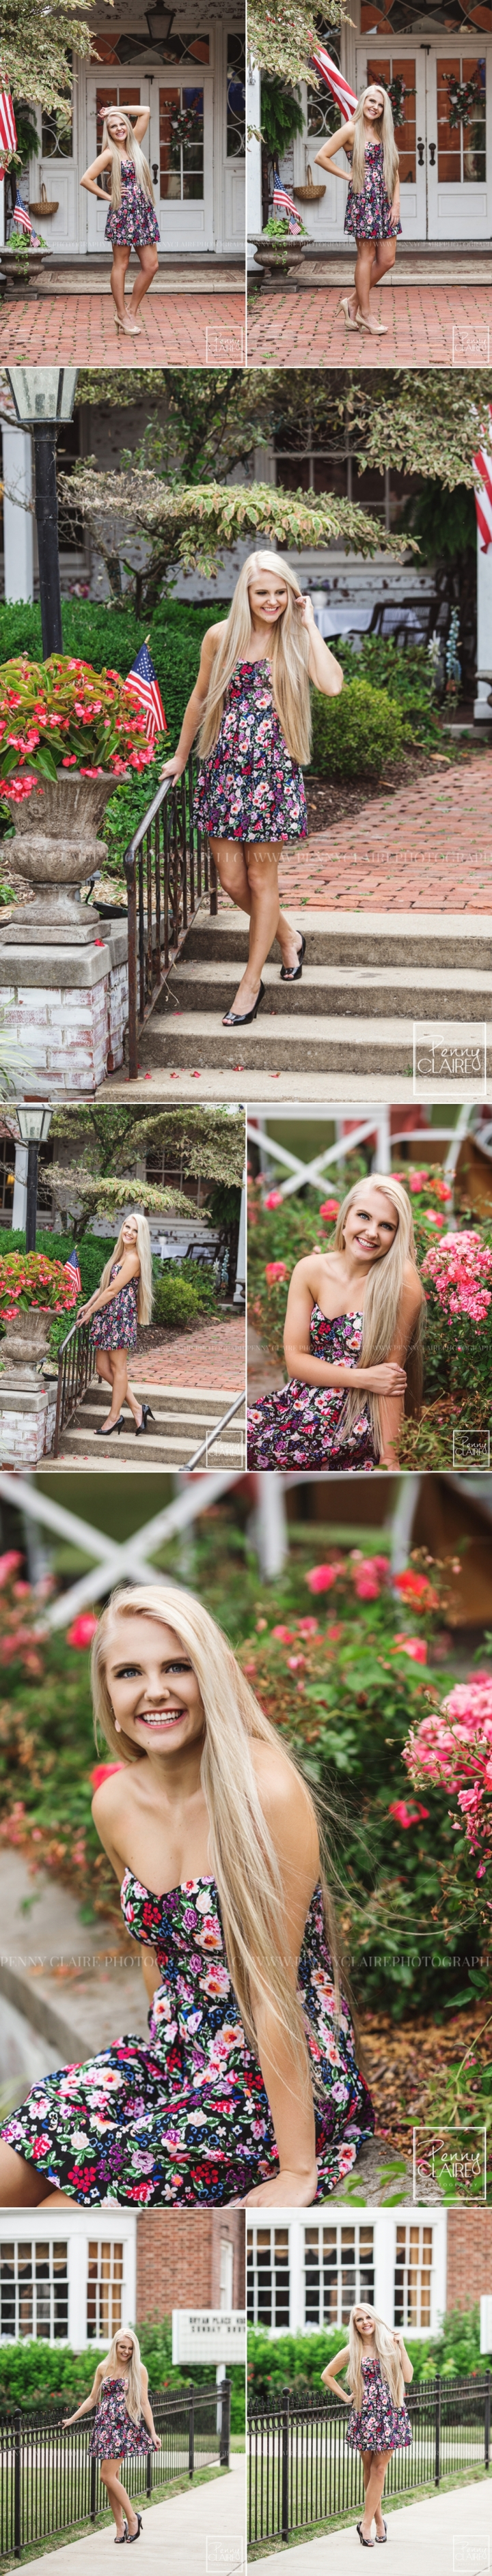 High-School-Senior-Photos-pennyclaire 2